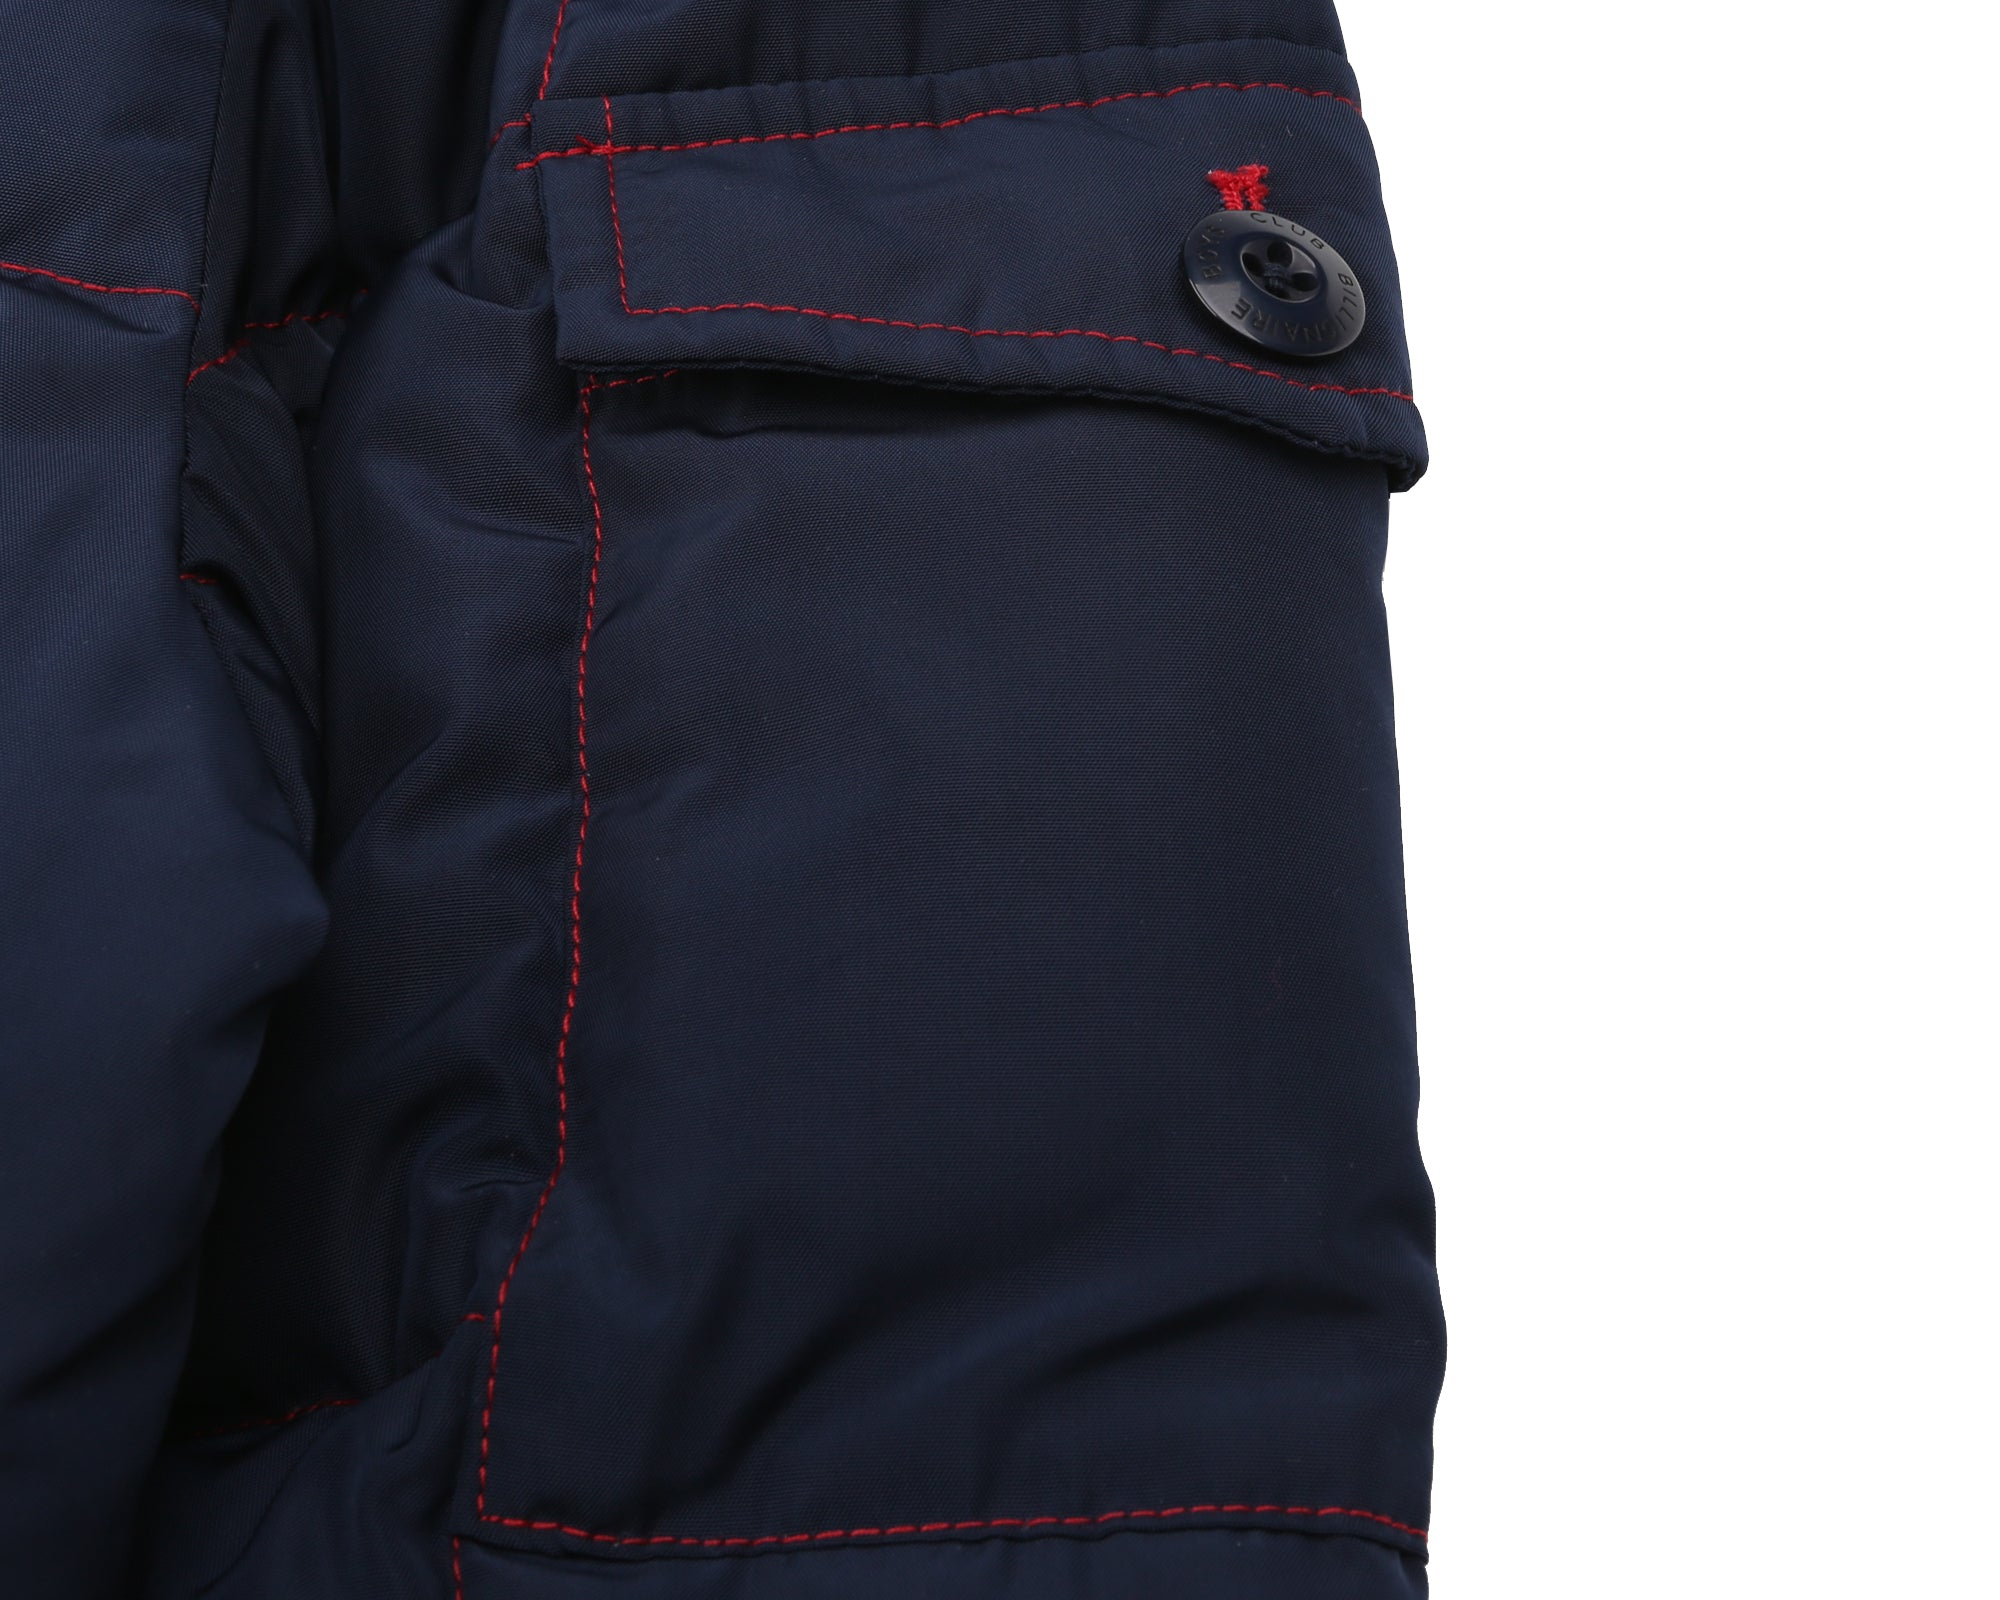 HALF-ZIP SKI JACKET - NAVY